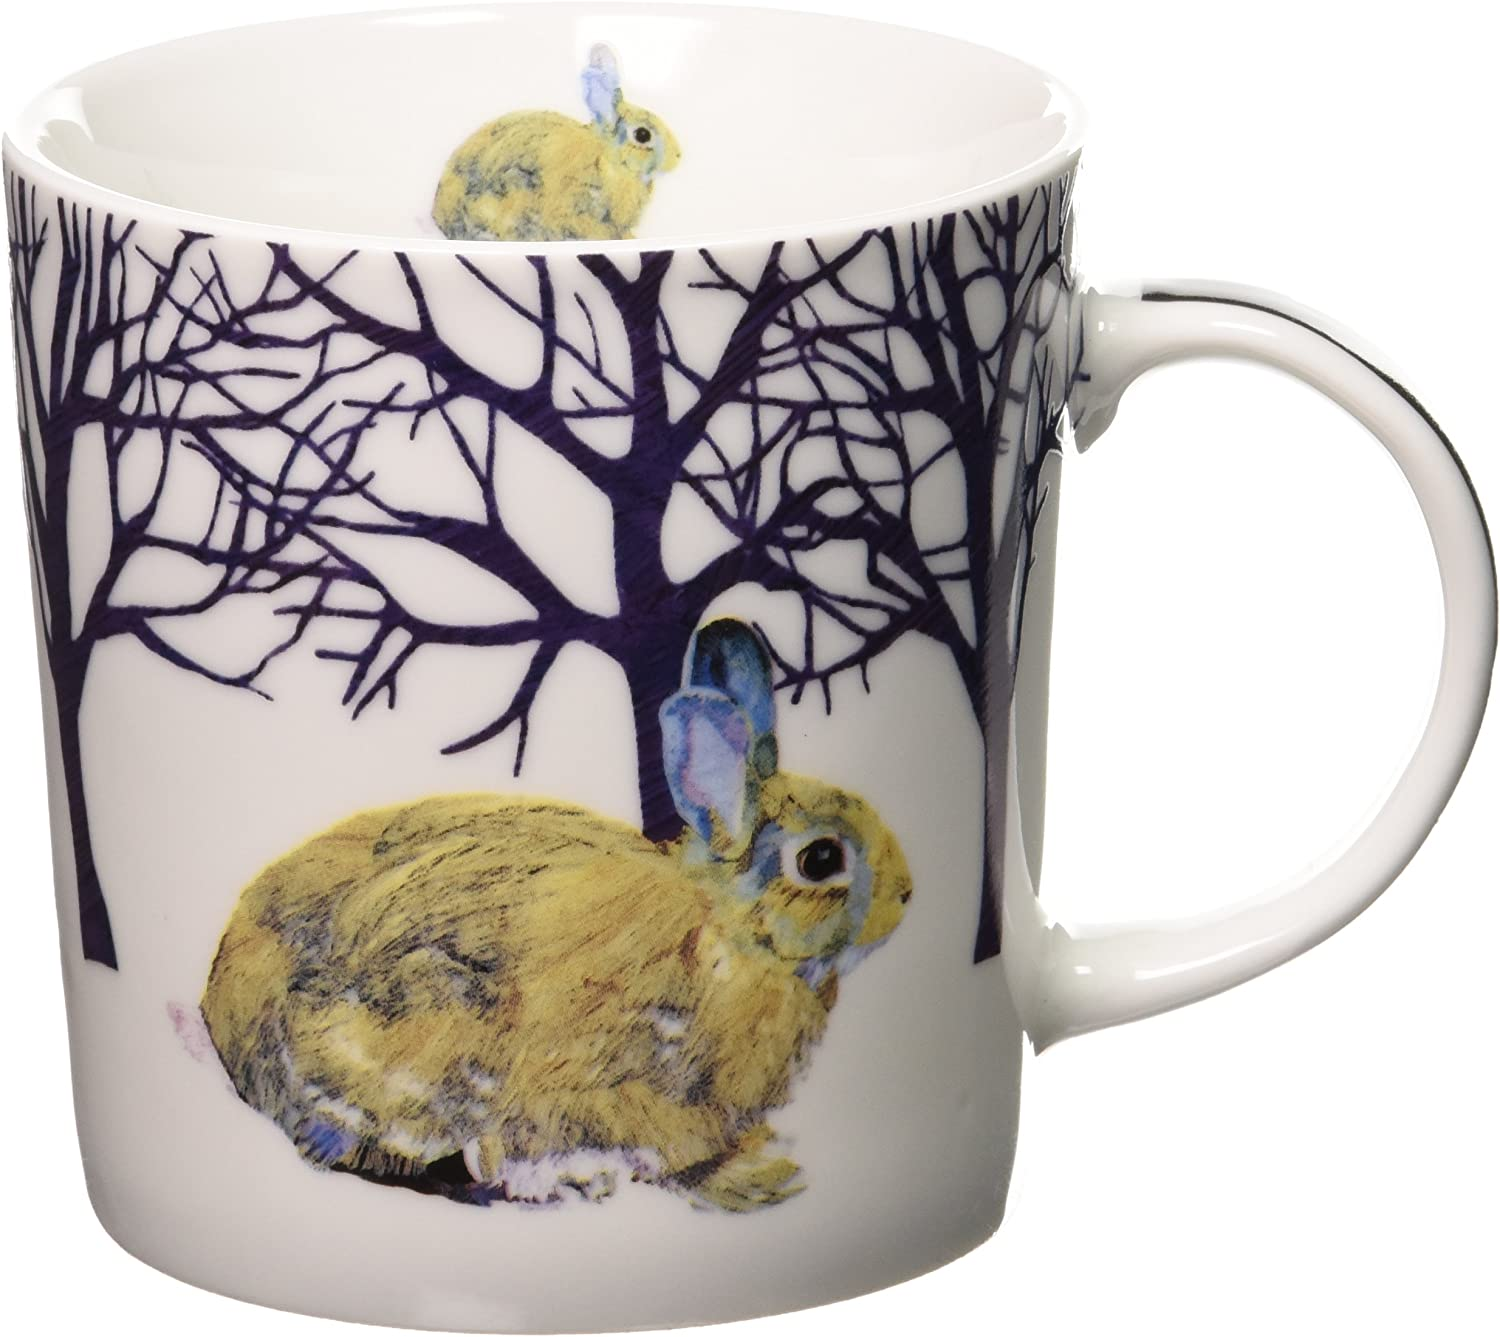 Paperproducts Design Decorative Bone China Mug Gift Box Set - Beverages, Hot, Cold Drinks, Tea – Artistic Designs, Decorated Mugs – 13.5 Ounces, Patti Gay/Two Can Art Winter Rabbit Design